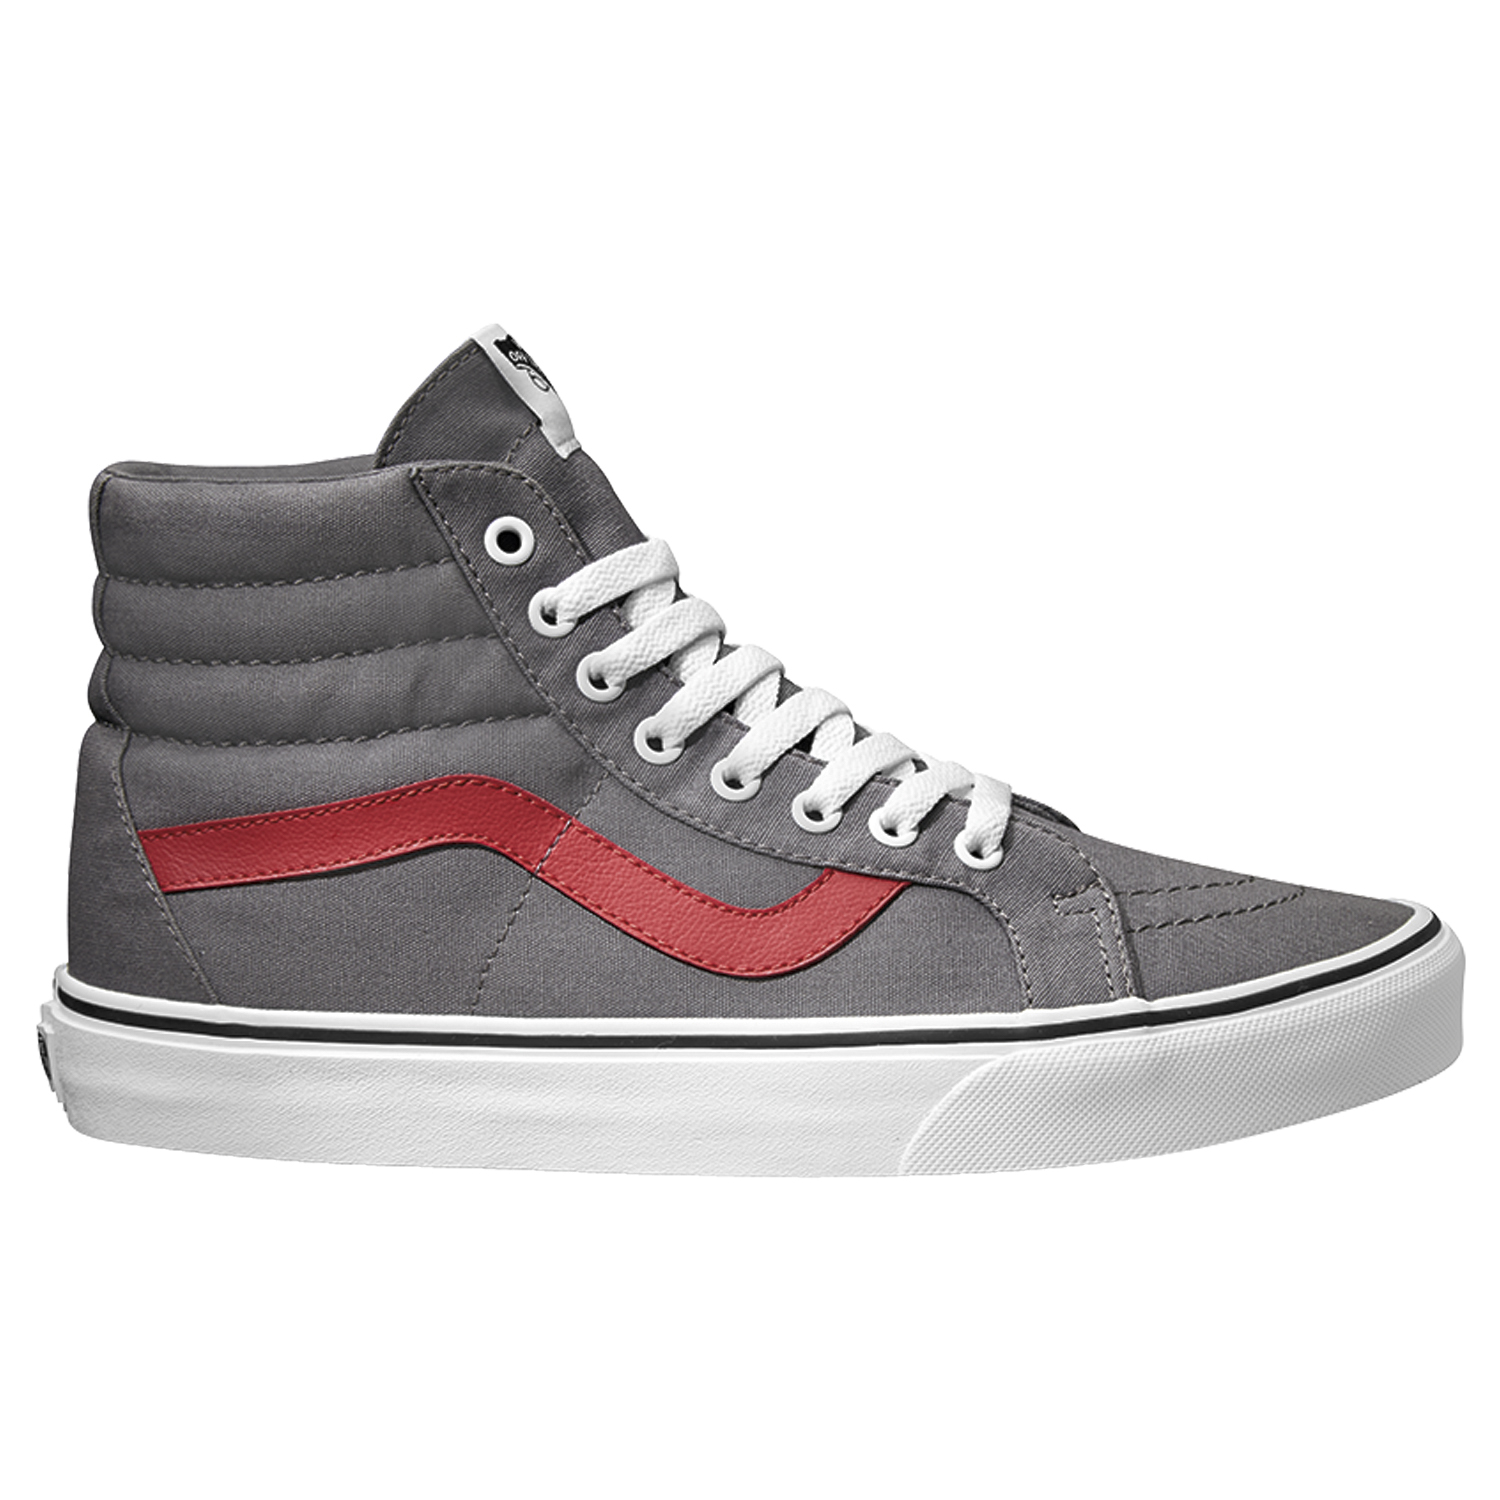 vans-sk8-hi-reis-canvas-tornado-racing-red-139-90